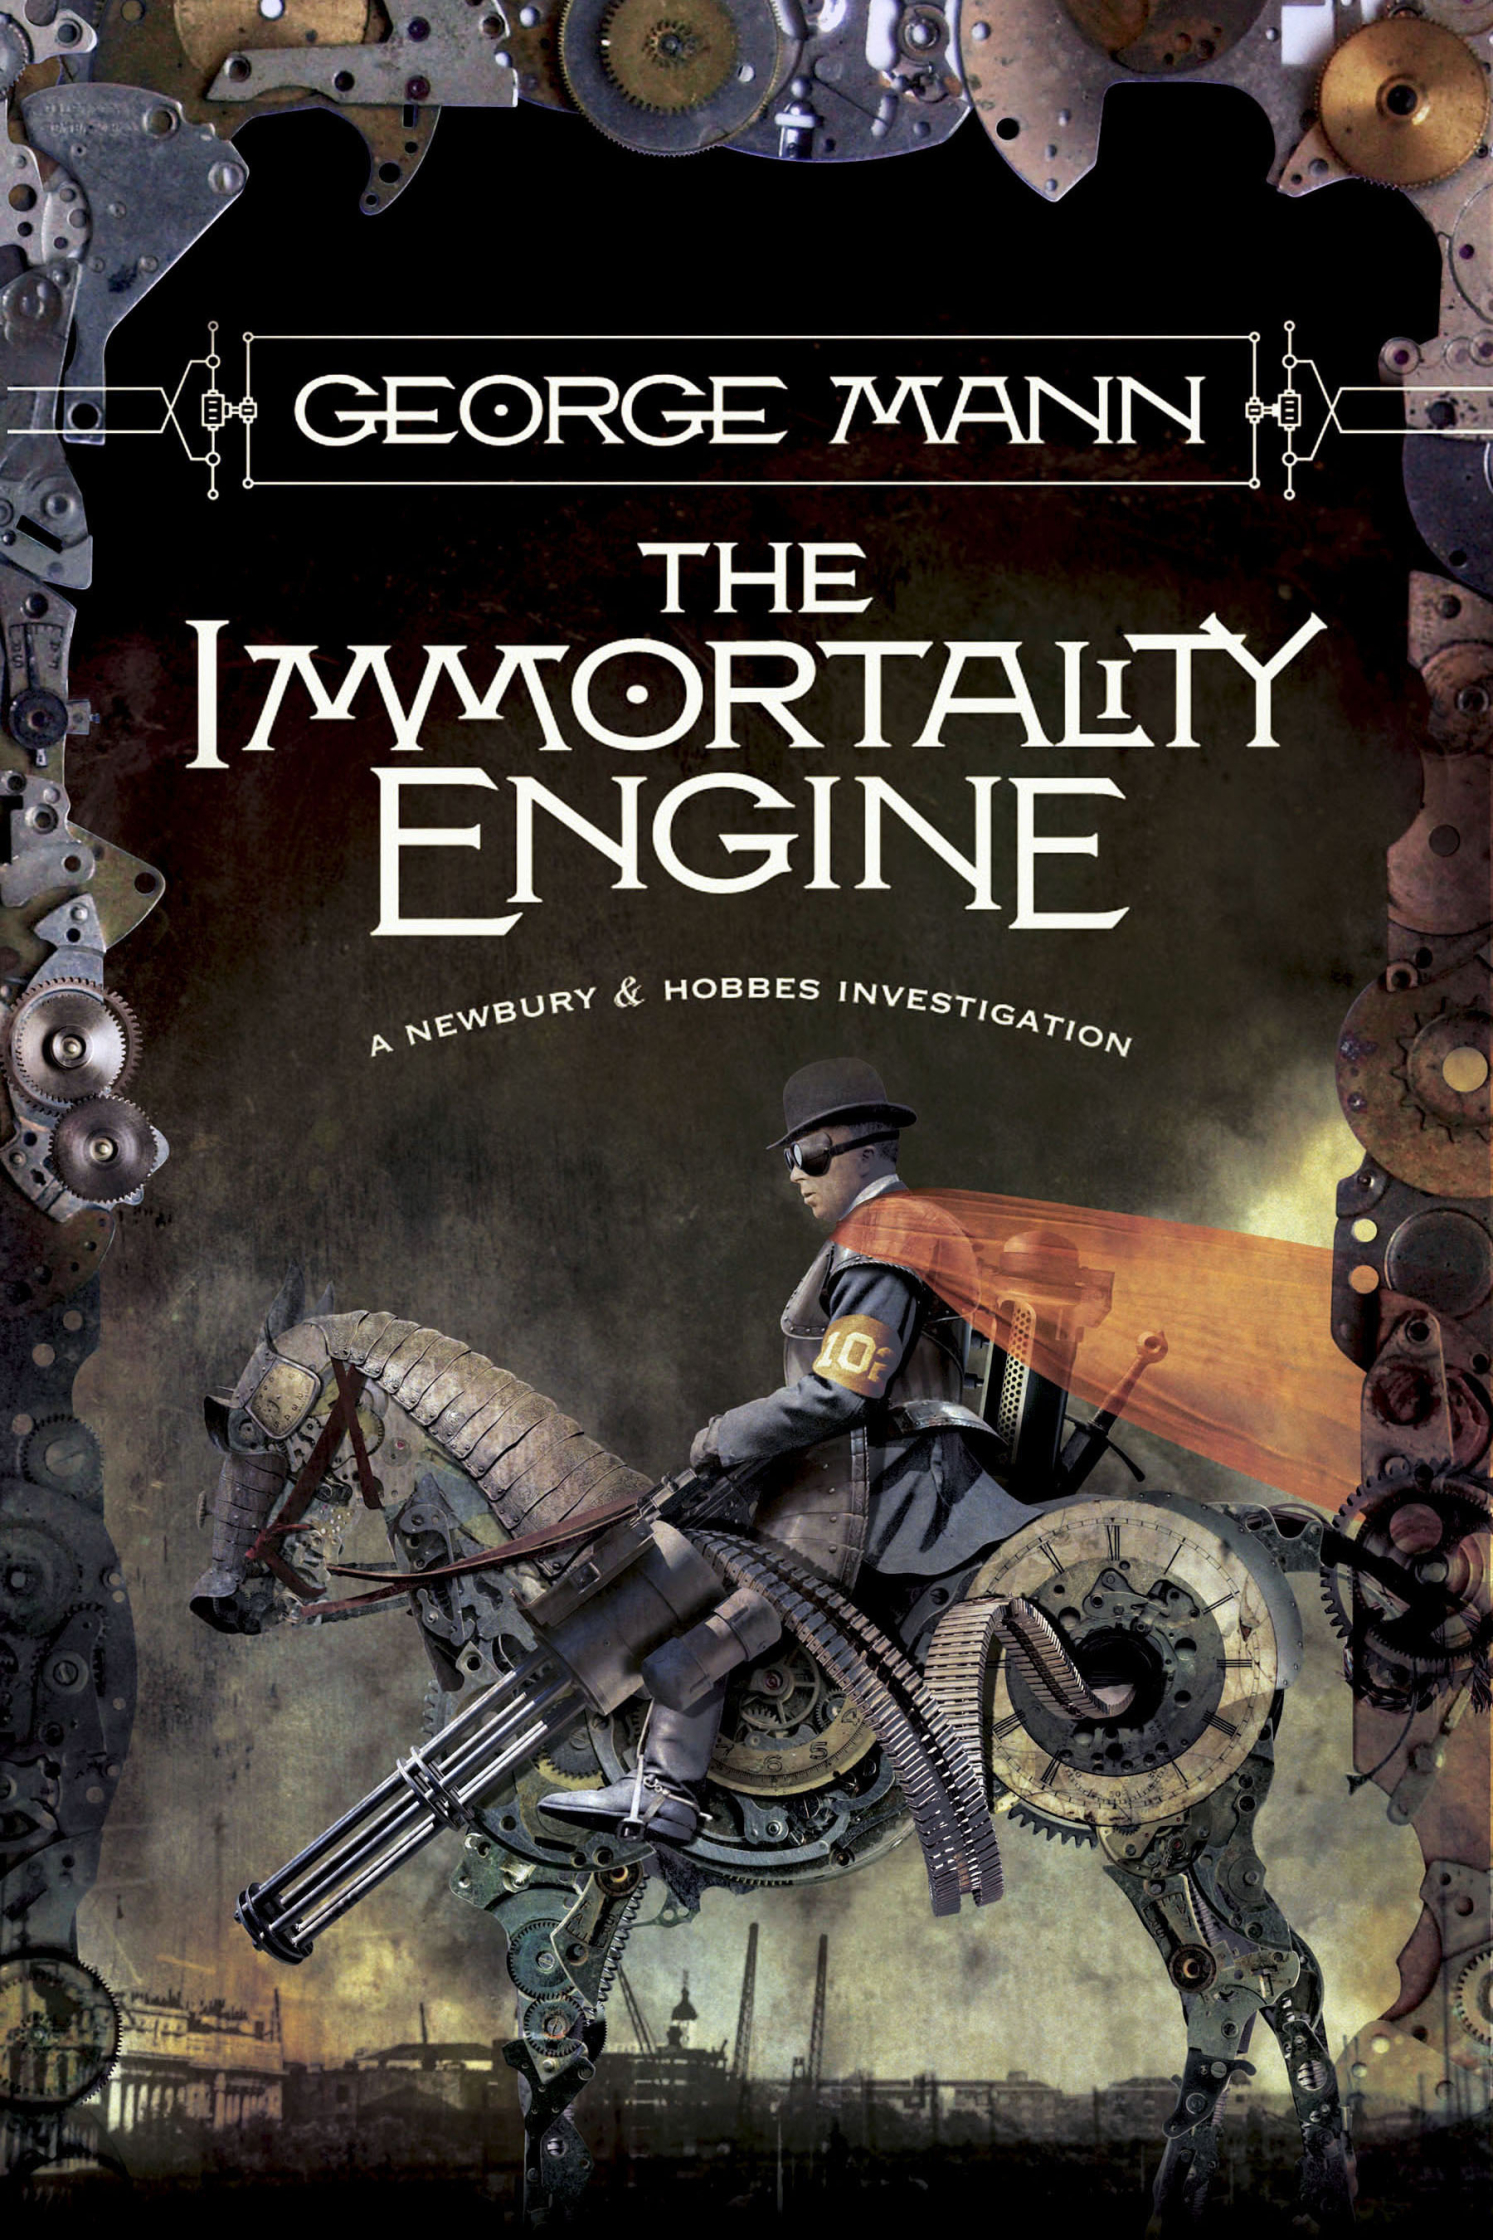 Immortal Engine Steampunk Cover George Mann Tor